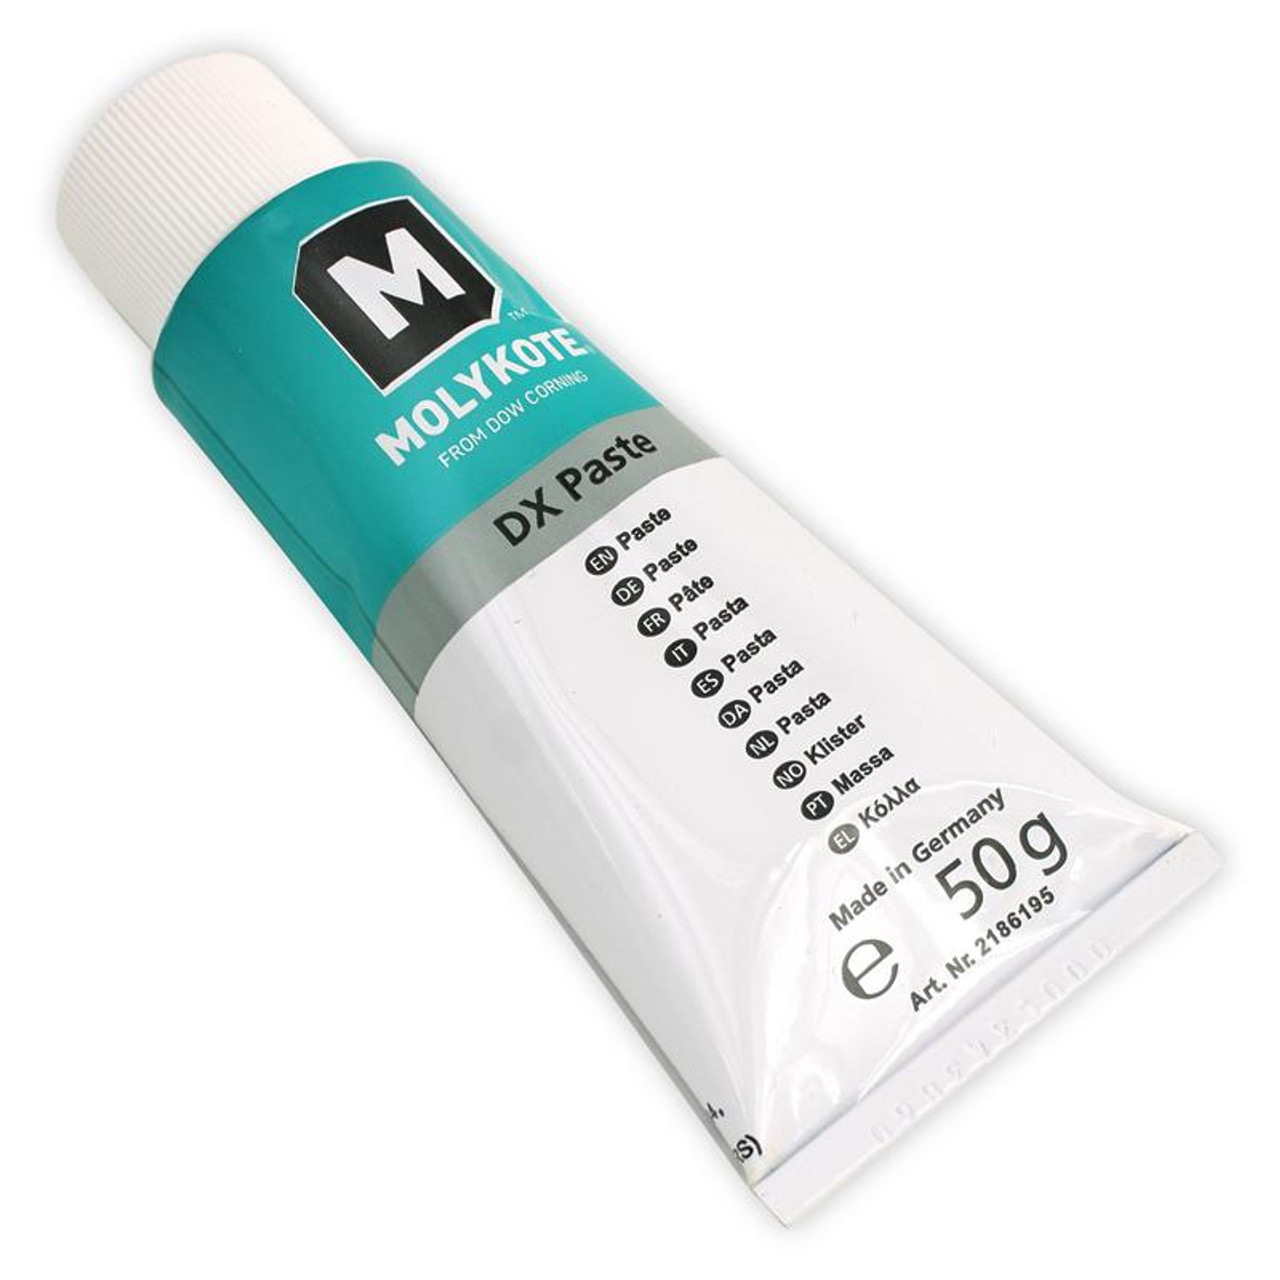 Molykote DX Paste Grease for Watch Movements ETA Calibers and